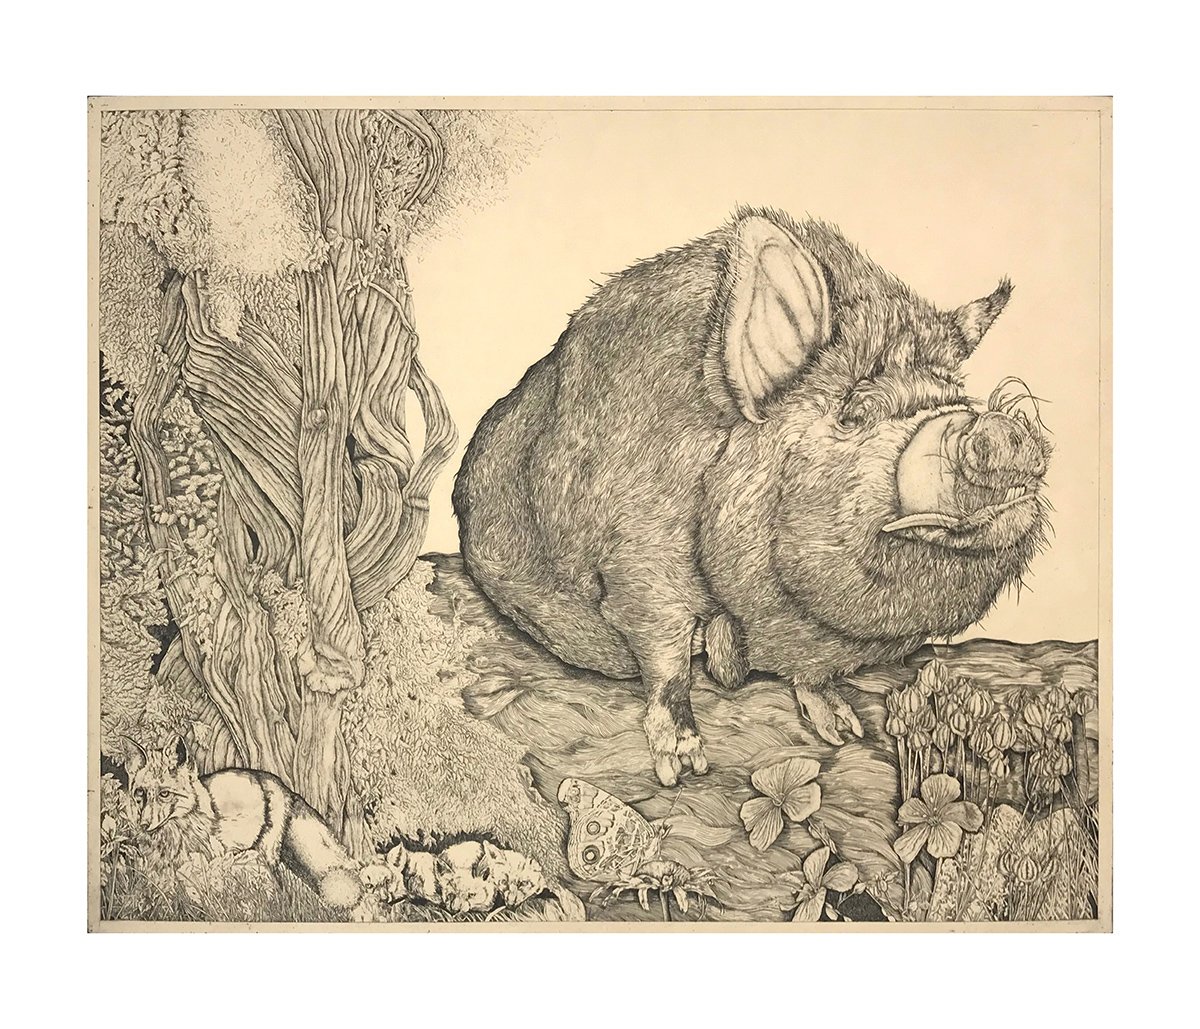 Tucker  etching with chine collé  22 x 28 inches (image)  31.5 x 36 inches (sheet)  edition 30  2017